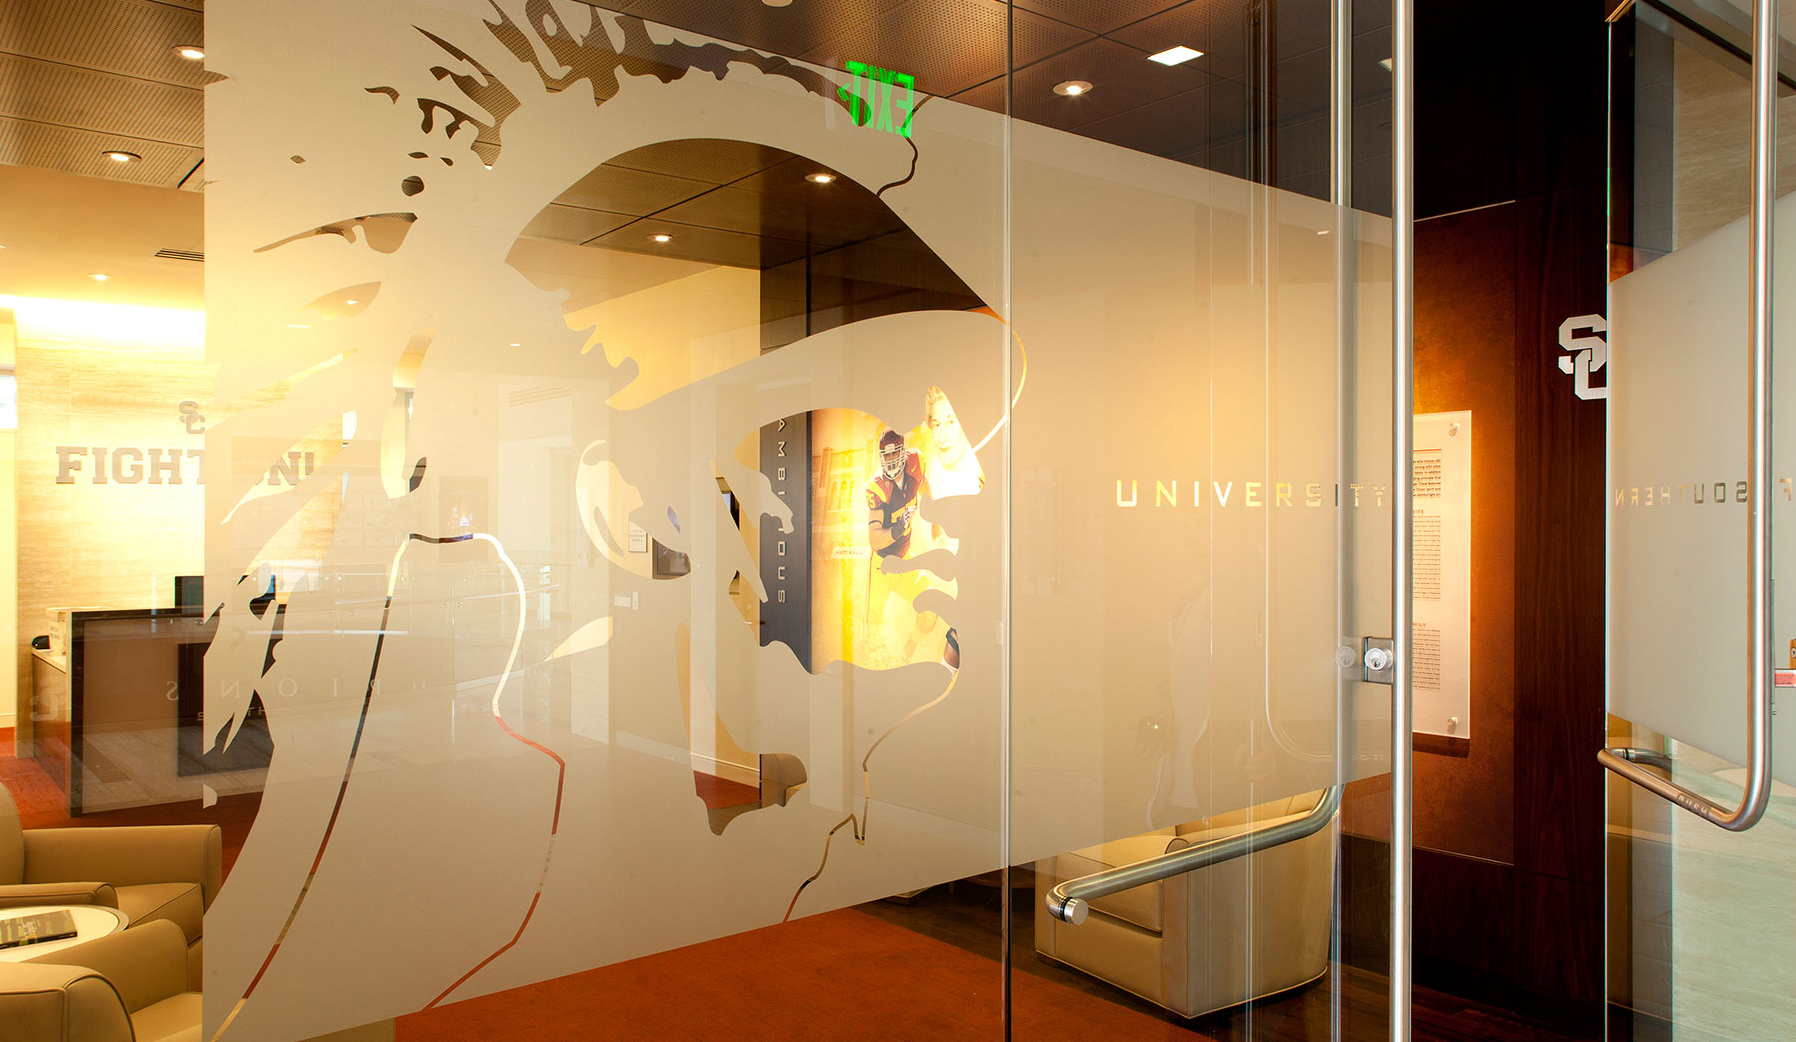 Heritage Hall Installation image: Glass branding for waiting rooms